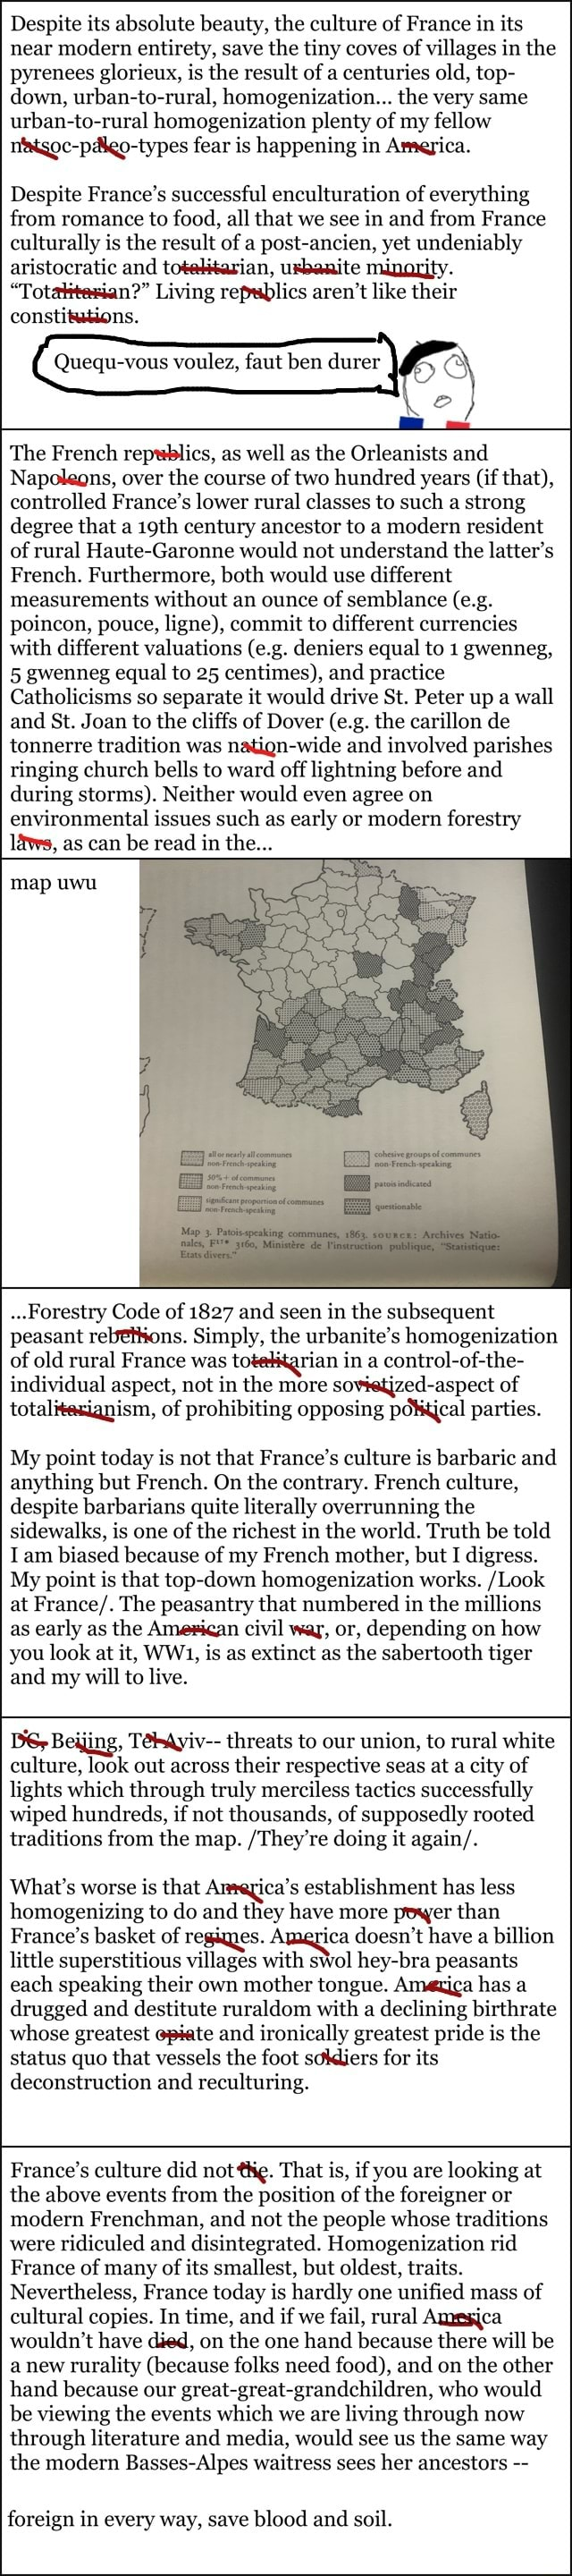 Despite its absolute beauty, the culture of France in its near modern entirety, save the tiny coves of villages in the pyrenees glorieux, is the result of a centuries old, top down, urban to rural, homogenization the very same urban to rural homogenization plenty of my fellow riatgoc pdigo types fear is happening in America. Despite France's successful enculturation of everything from romance to food, all that we see in and from France culturally is the result of a post ancien, yet undeniably aristocratic and totelisarian, uxbanite minarify. Totattesian Living repwblics aren't like their constitutions. Queq us voulez, faut ben durer The French repwhlics, as well as the Orieanists and Napoleons, over the course of two hundred years if that, controlled France's lower rural classes to such a